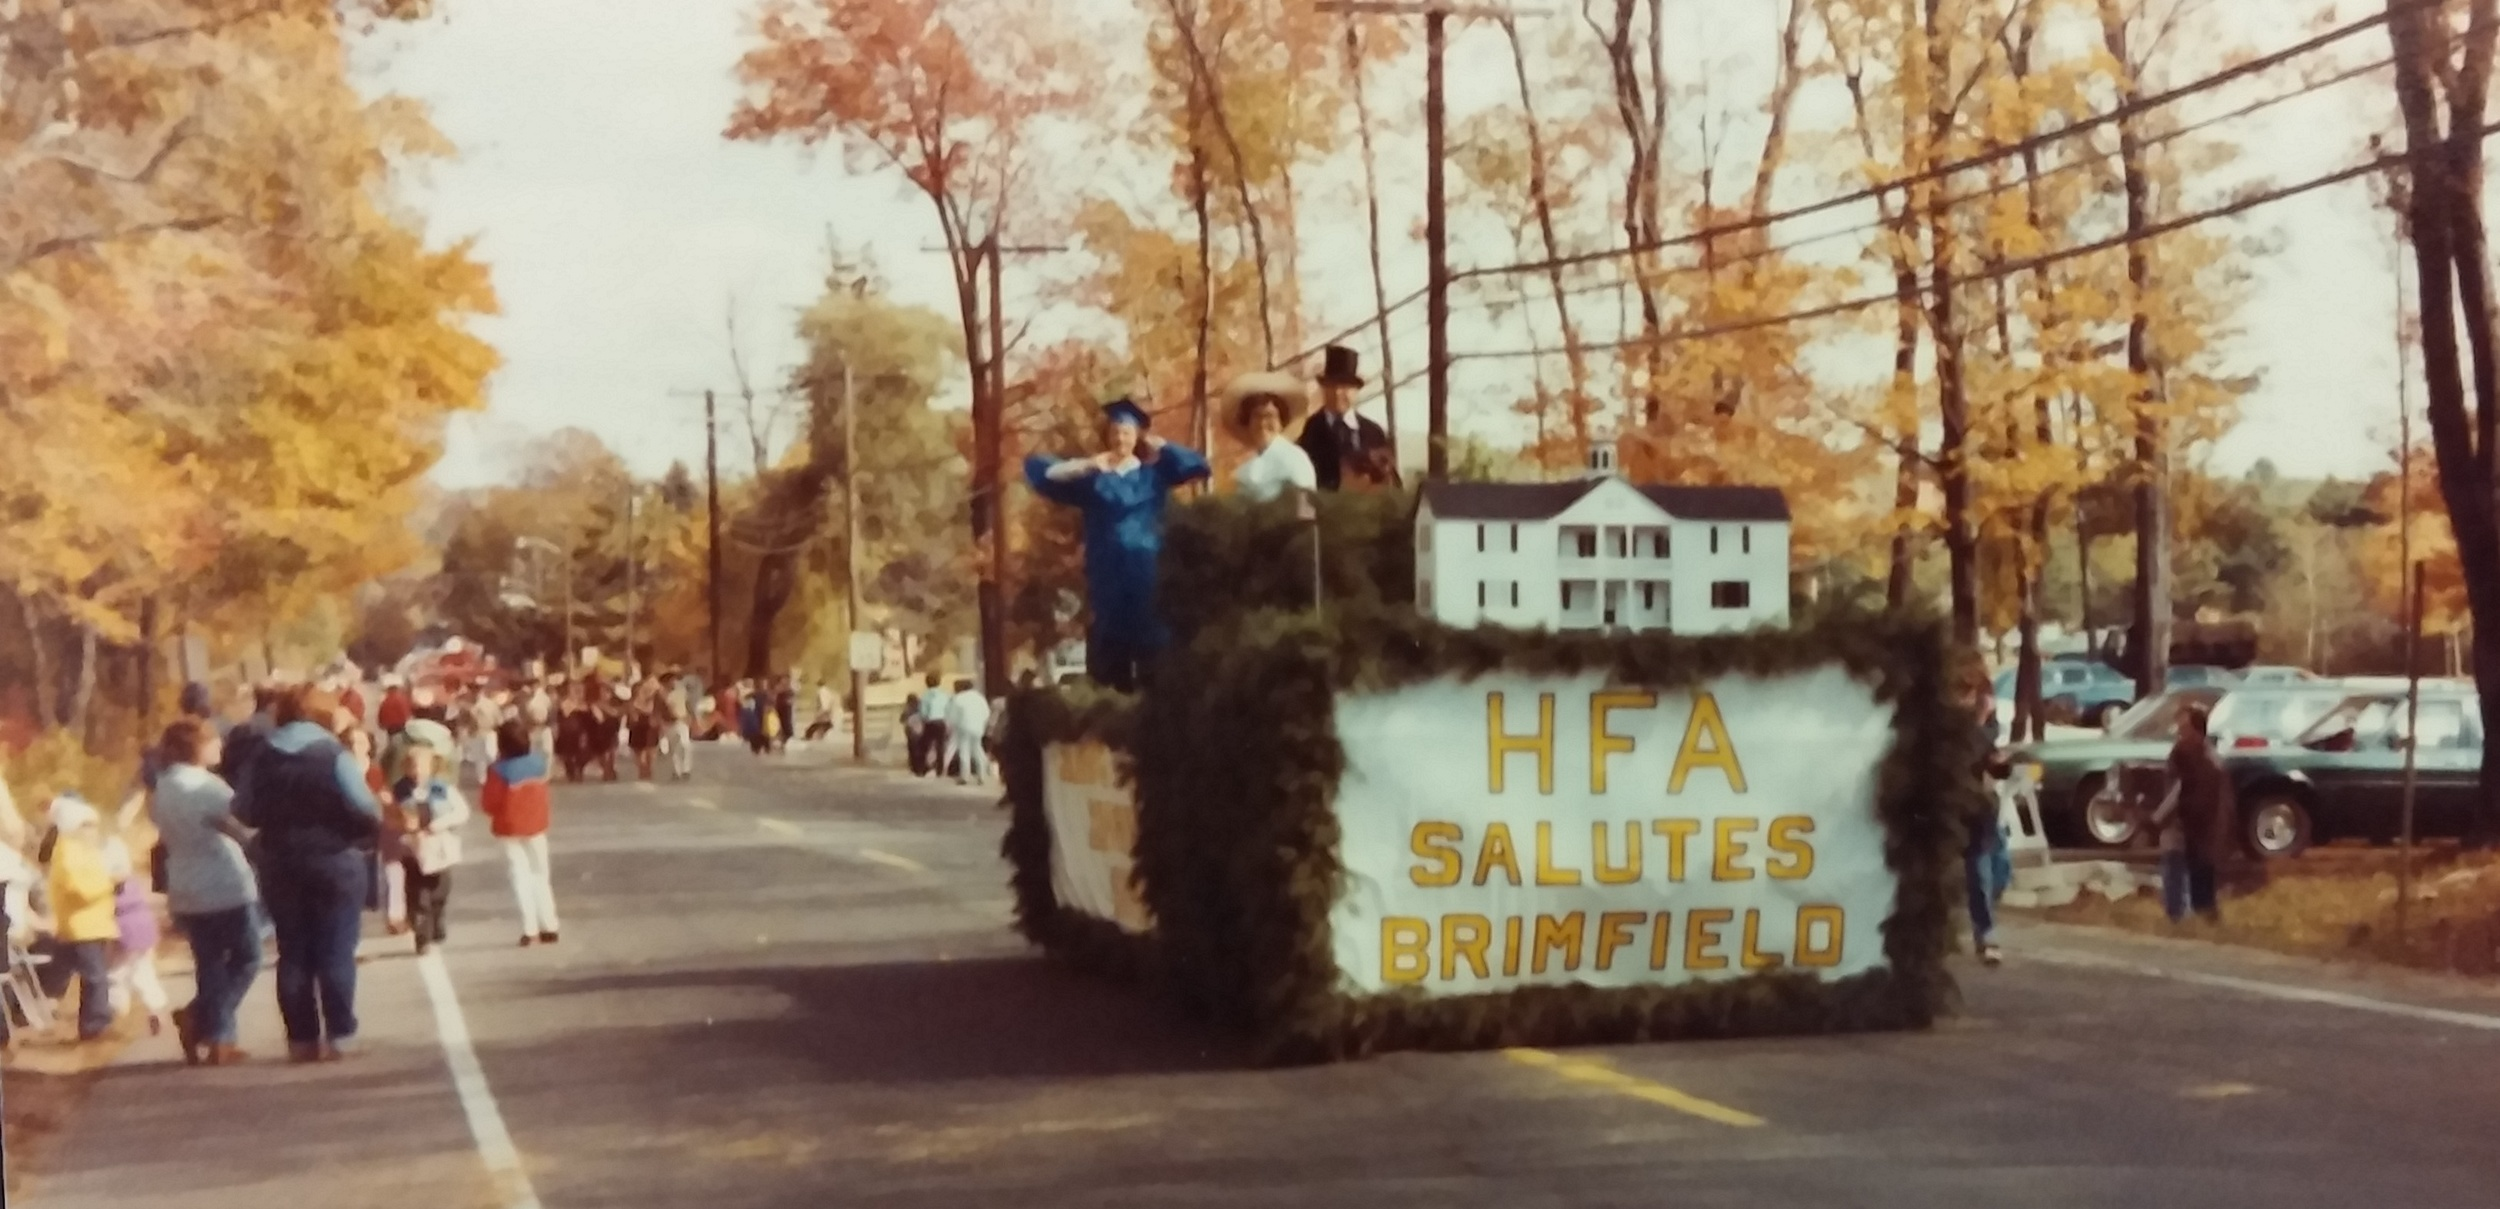 HFA float on Rt 20 cropped.jpg